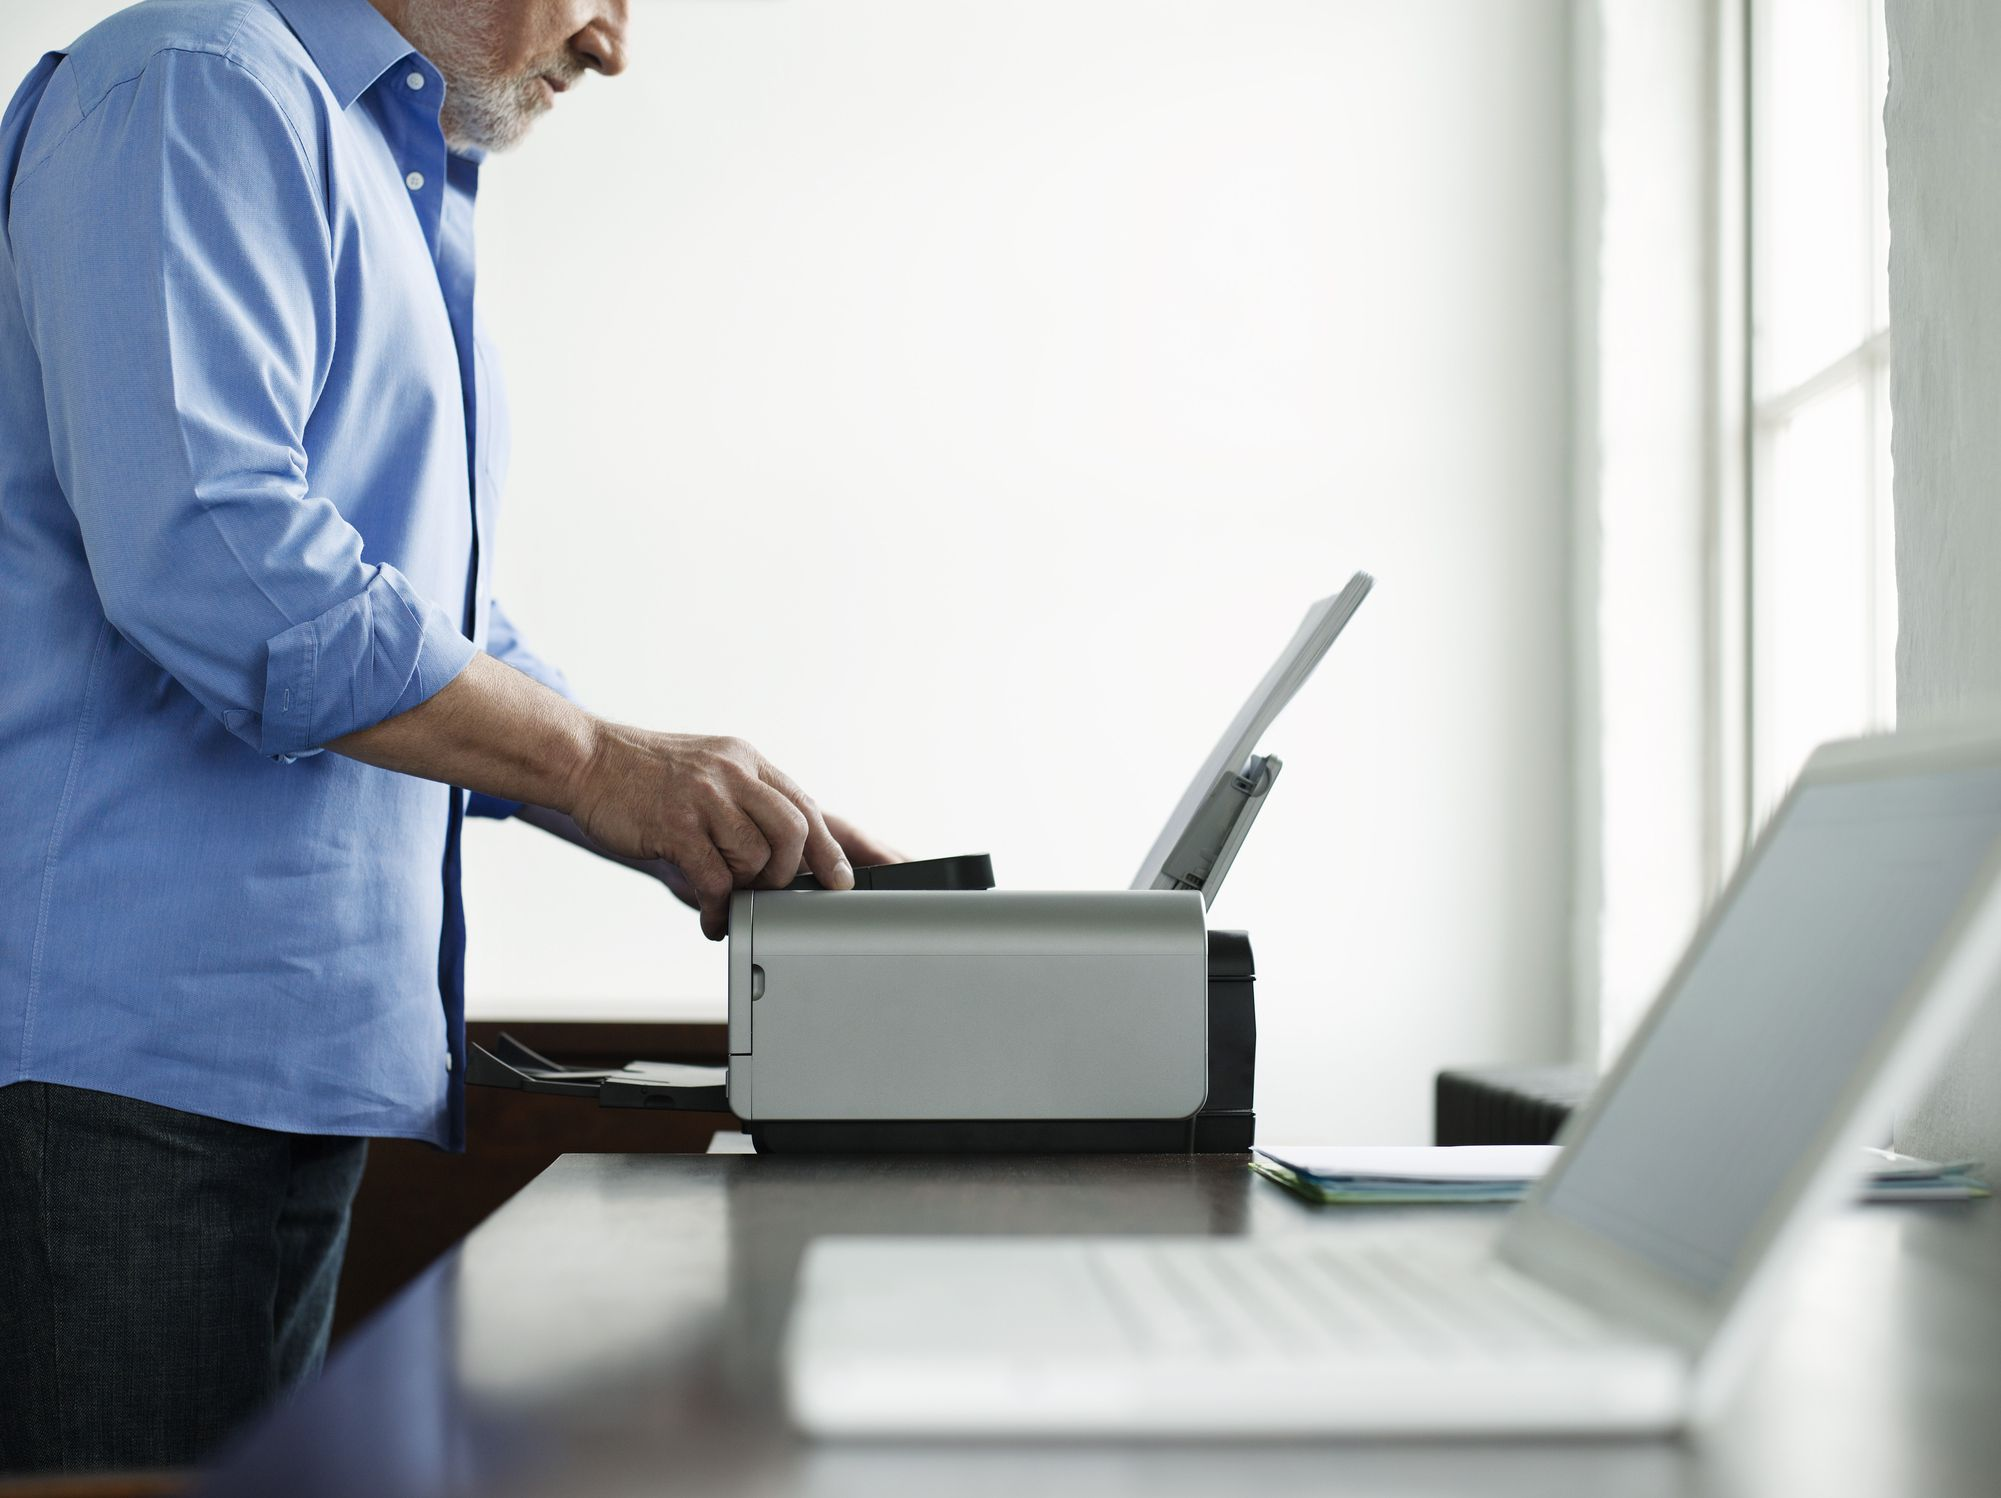 8 Best Wireless Printers of 2019